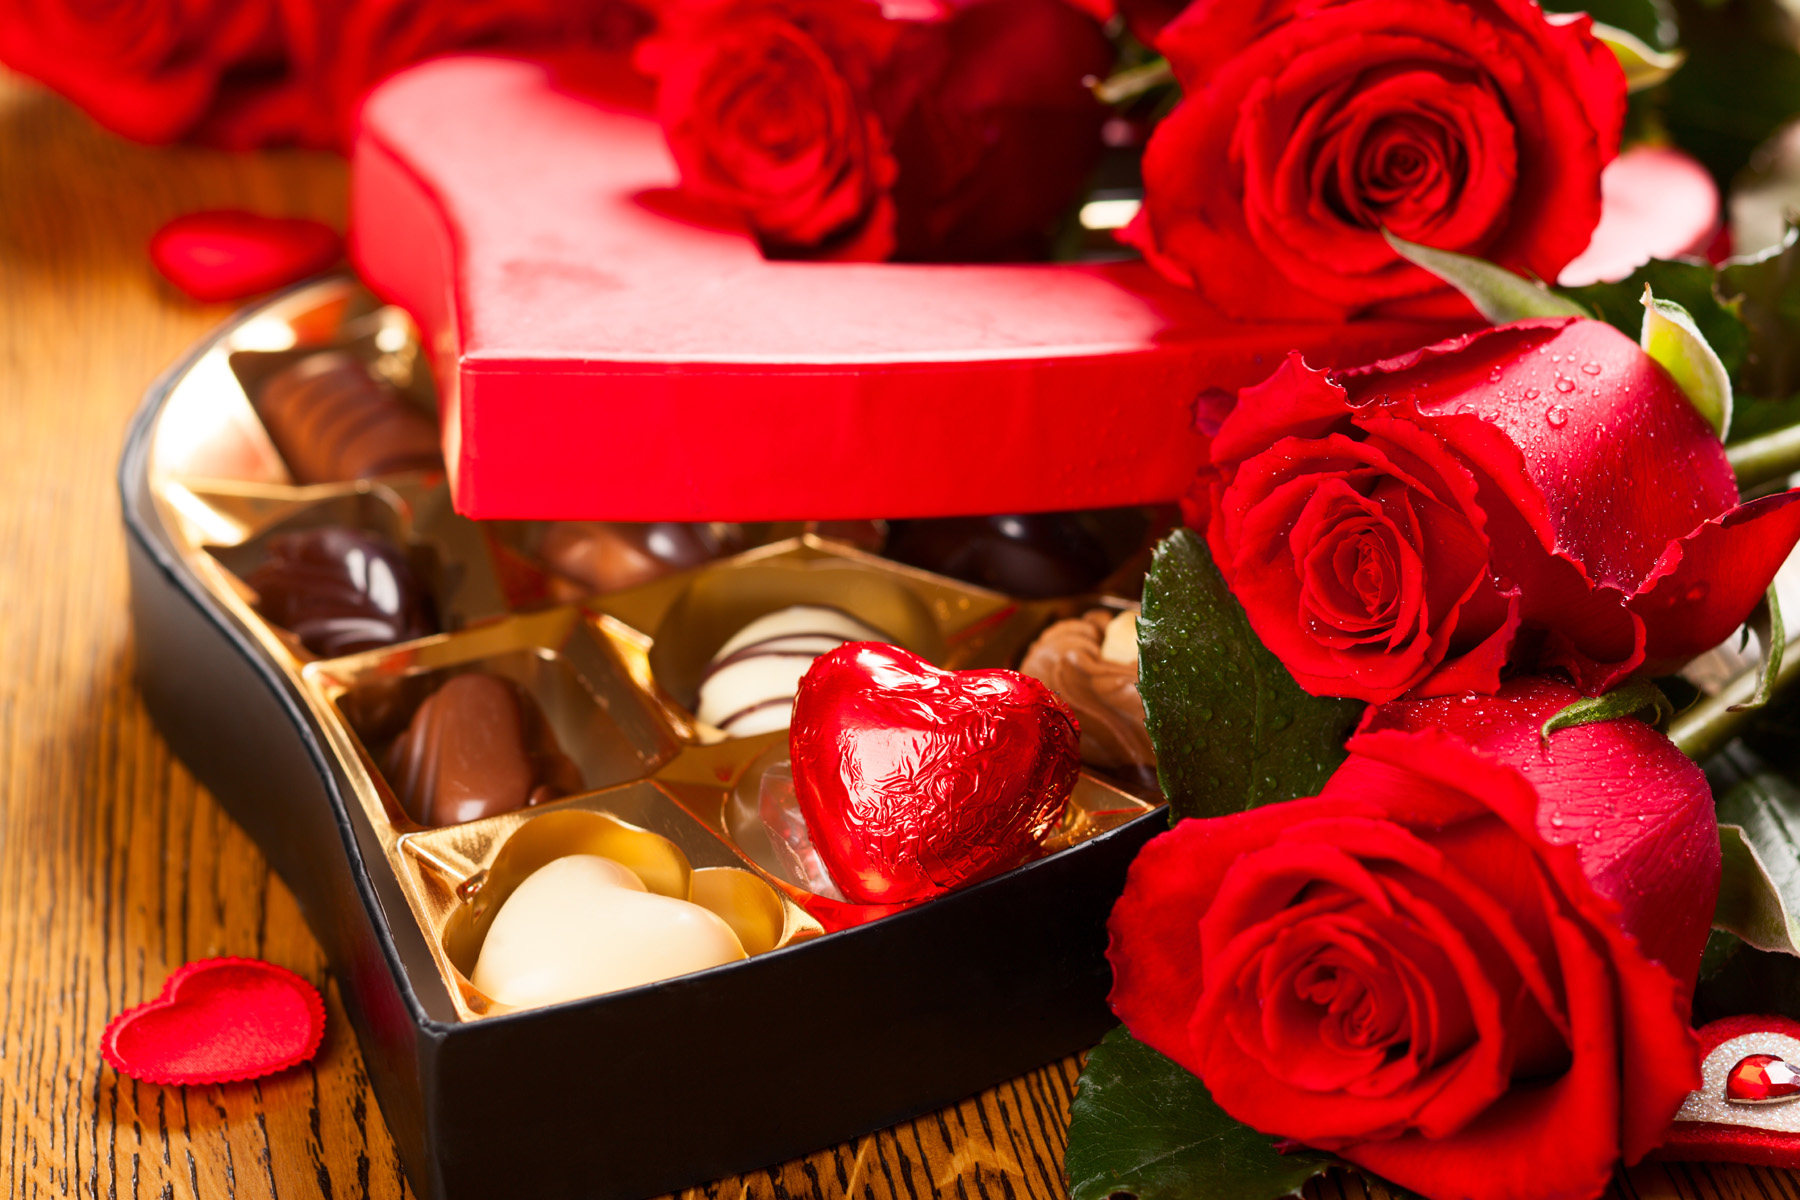 Red Rose and chocolate gift box 51578